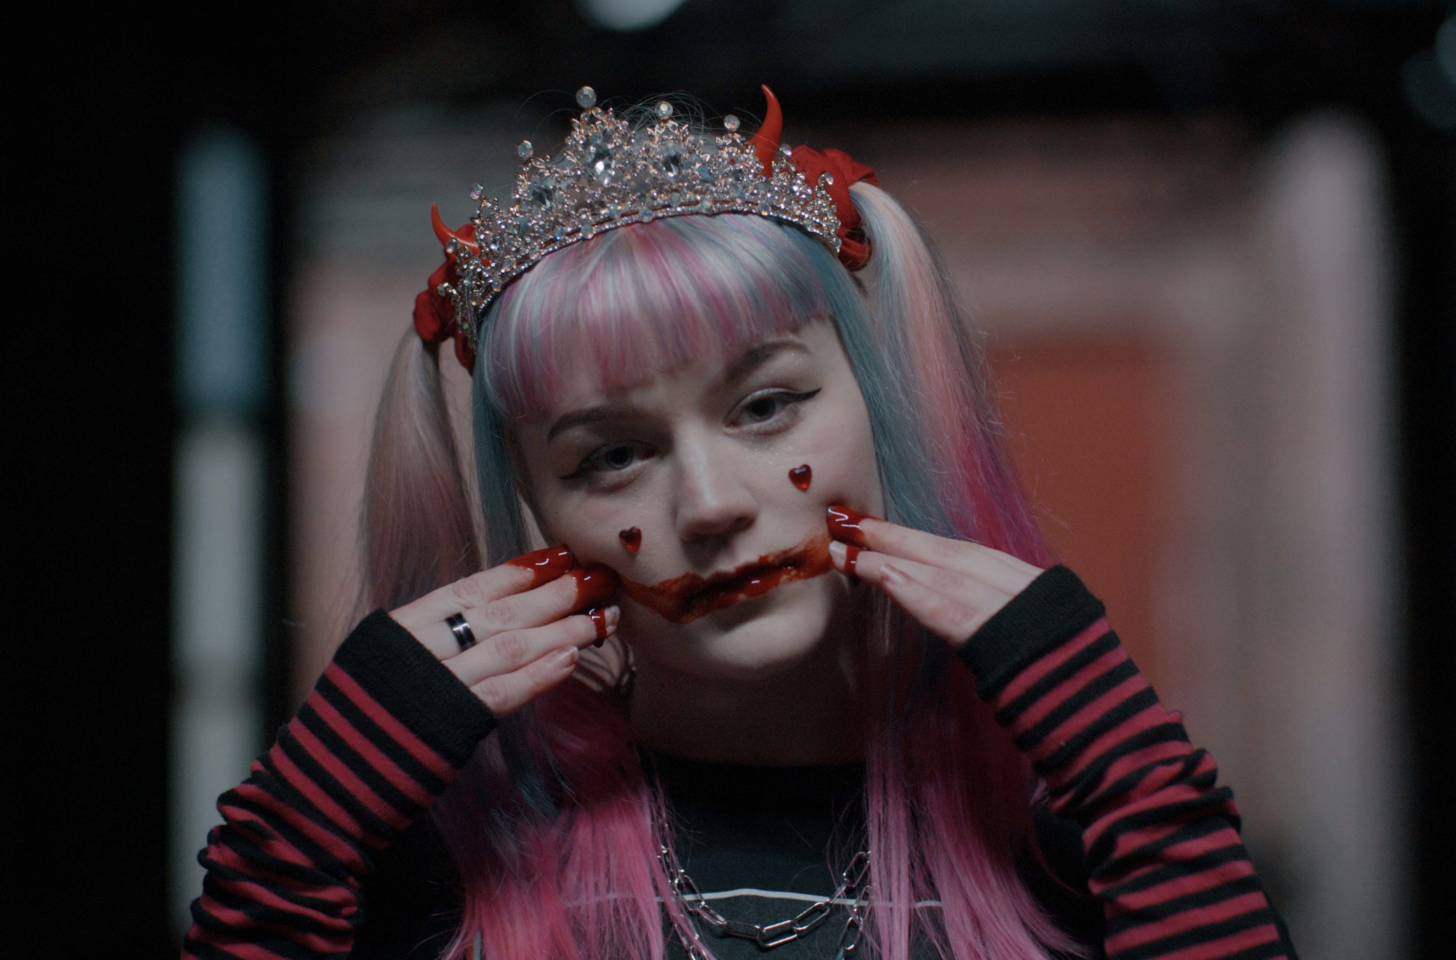 """PREMIERE: Elliot Lee Releases Video For """"Drama Queen"""", Her Second Single From Forthcoming EP """"Queen Of Nothing"""""""